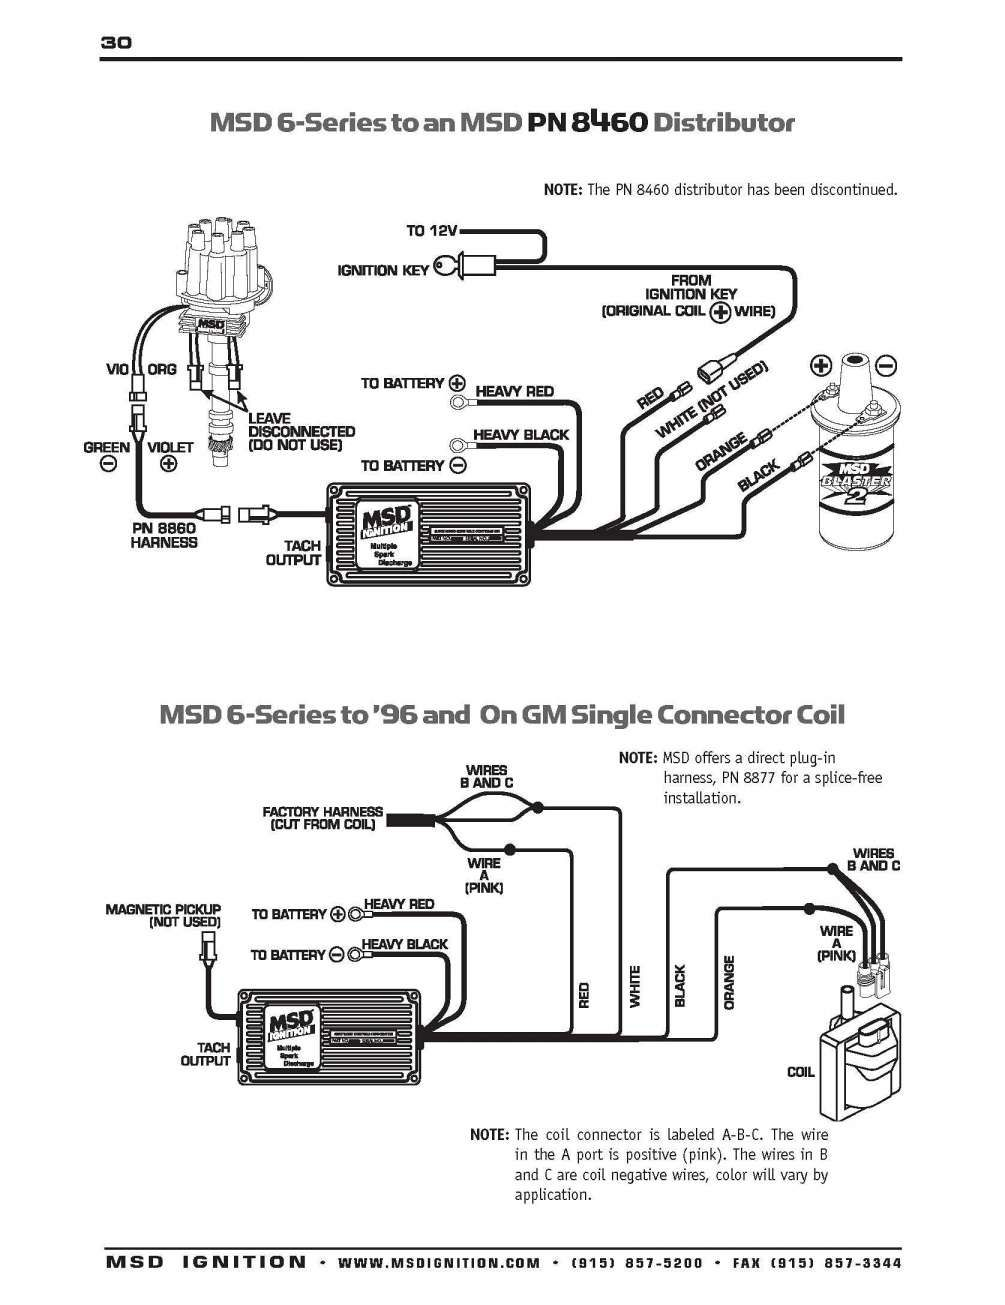 Basic Hot Rod Engine Hei Wiring Diagram and Hei Wiring Diagram Earch For Accel  Distributor - Hd-Dump In in 2020 | Diagram, Msd, Electrical diagramPinterest